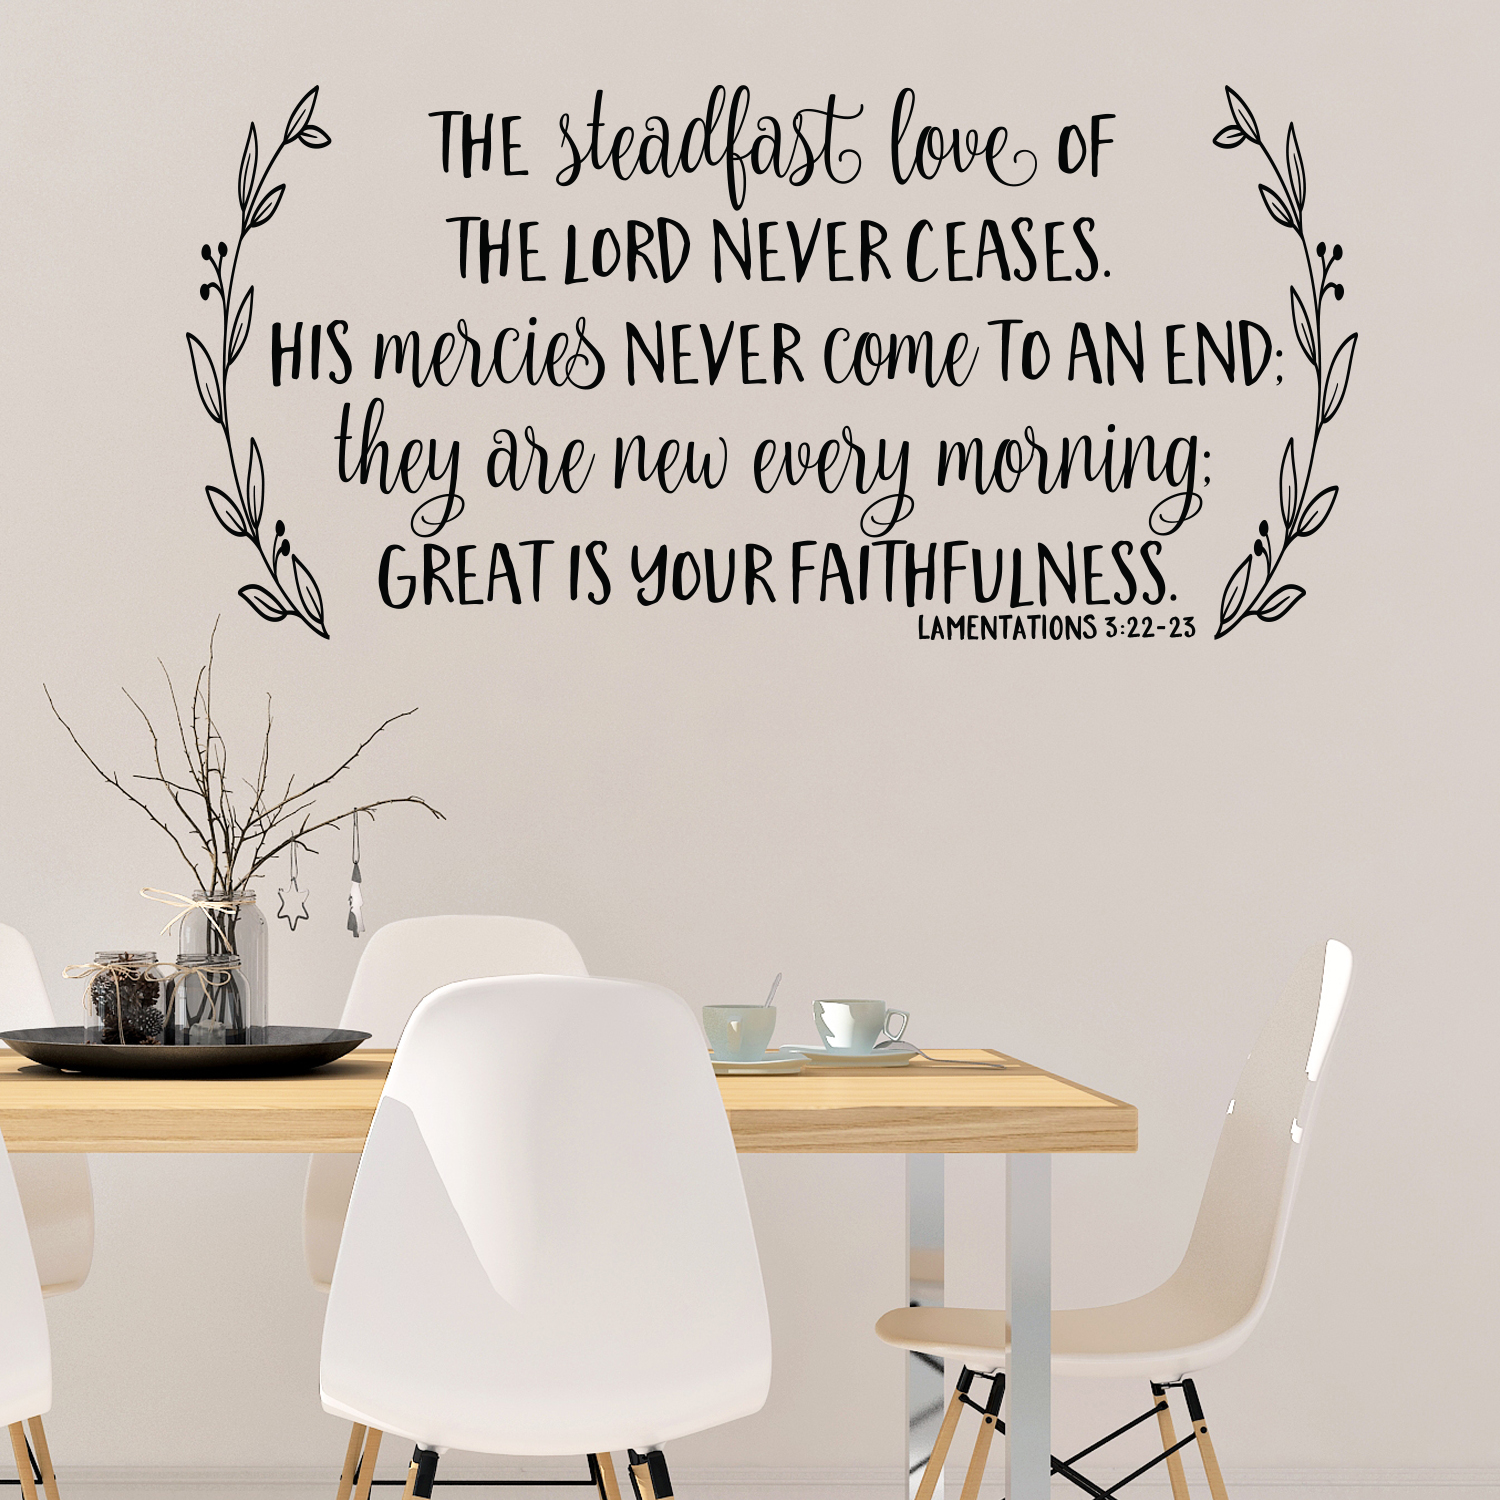 The Lord S Love Wall Decal: Lamentations 3v22-23 Vinyl Wall Decal 2 The Steadfast Love